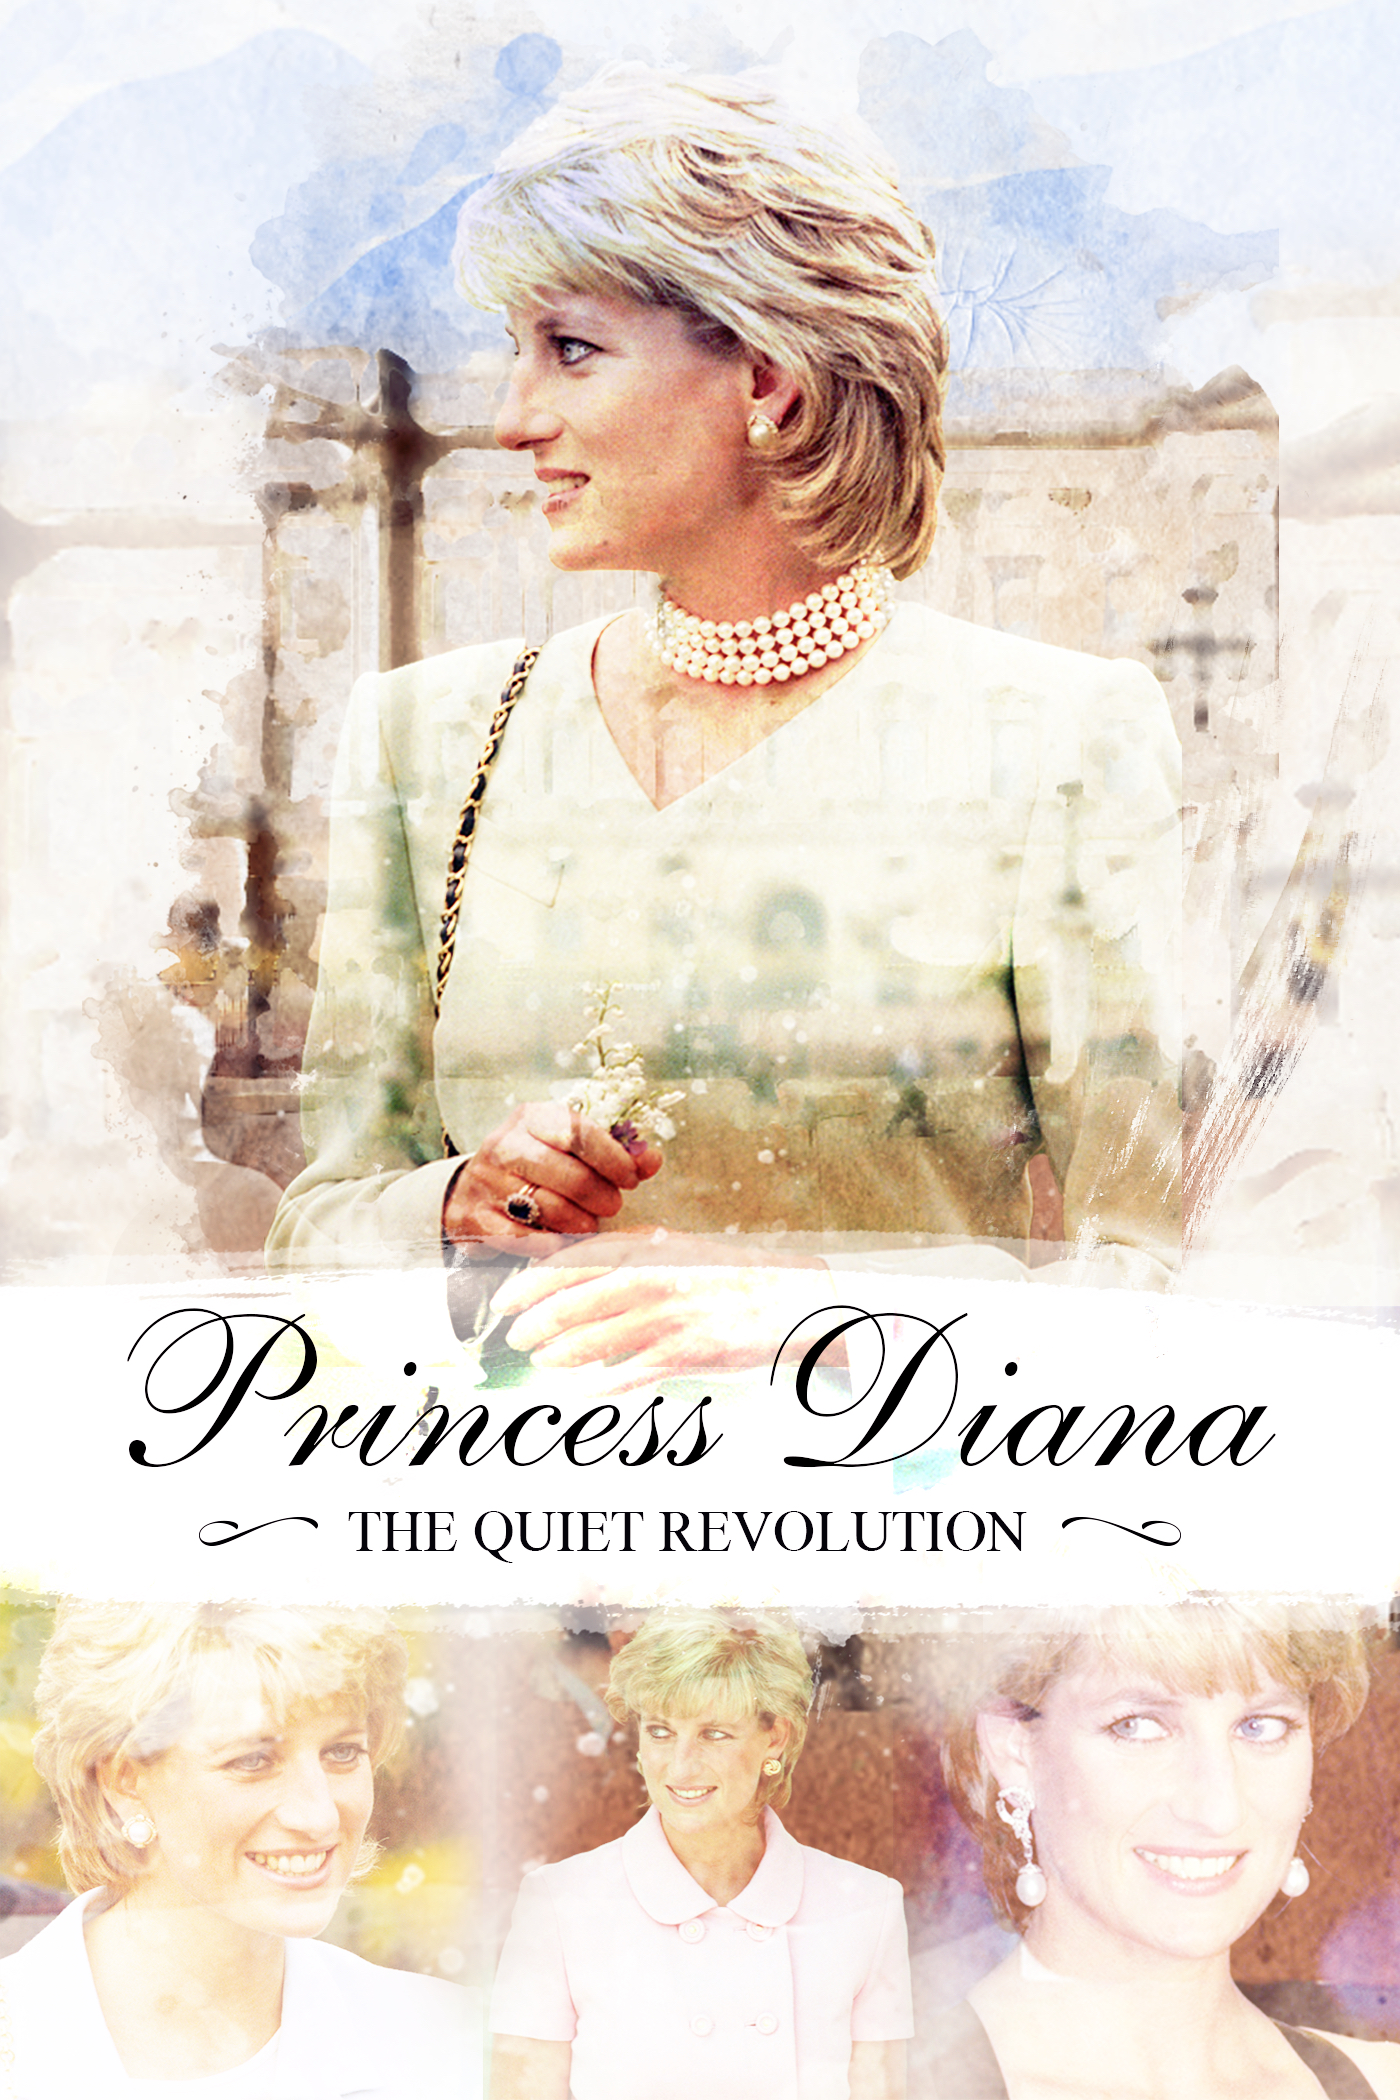 PRINCESS DIANA: QUIET REVOLUTION